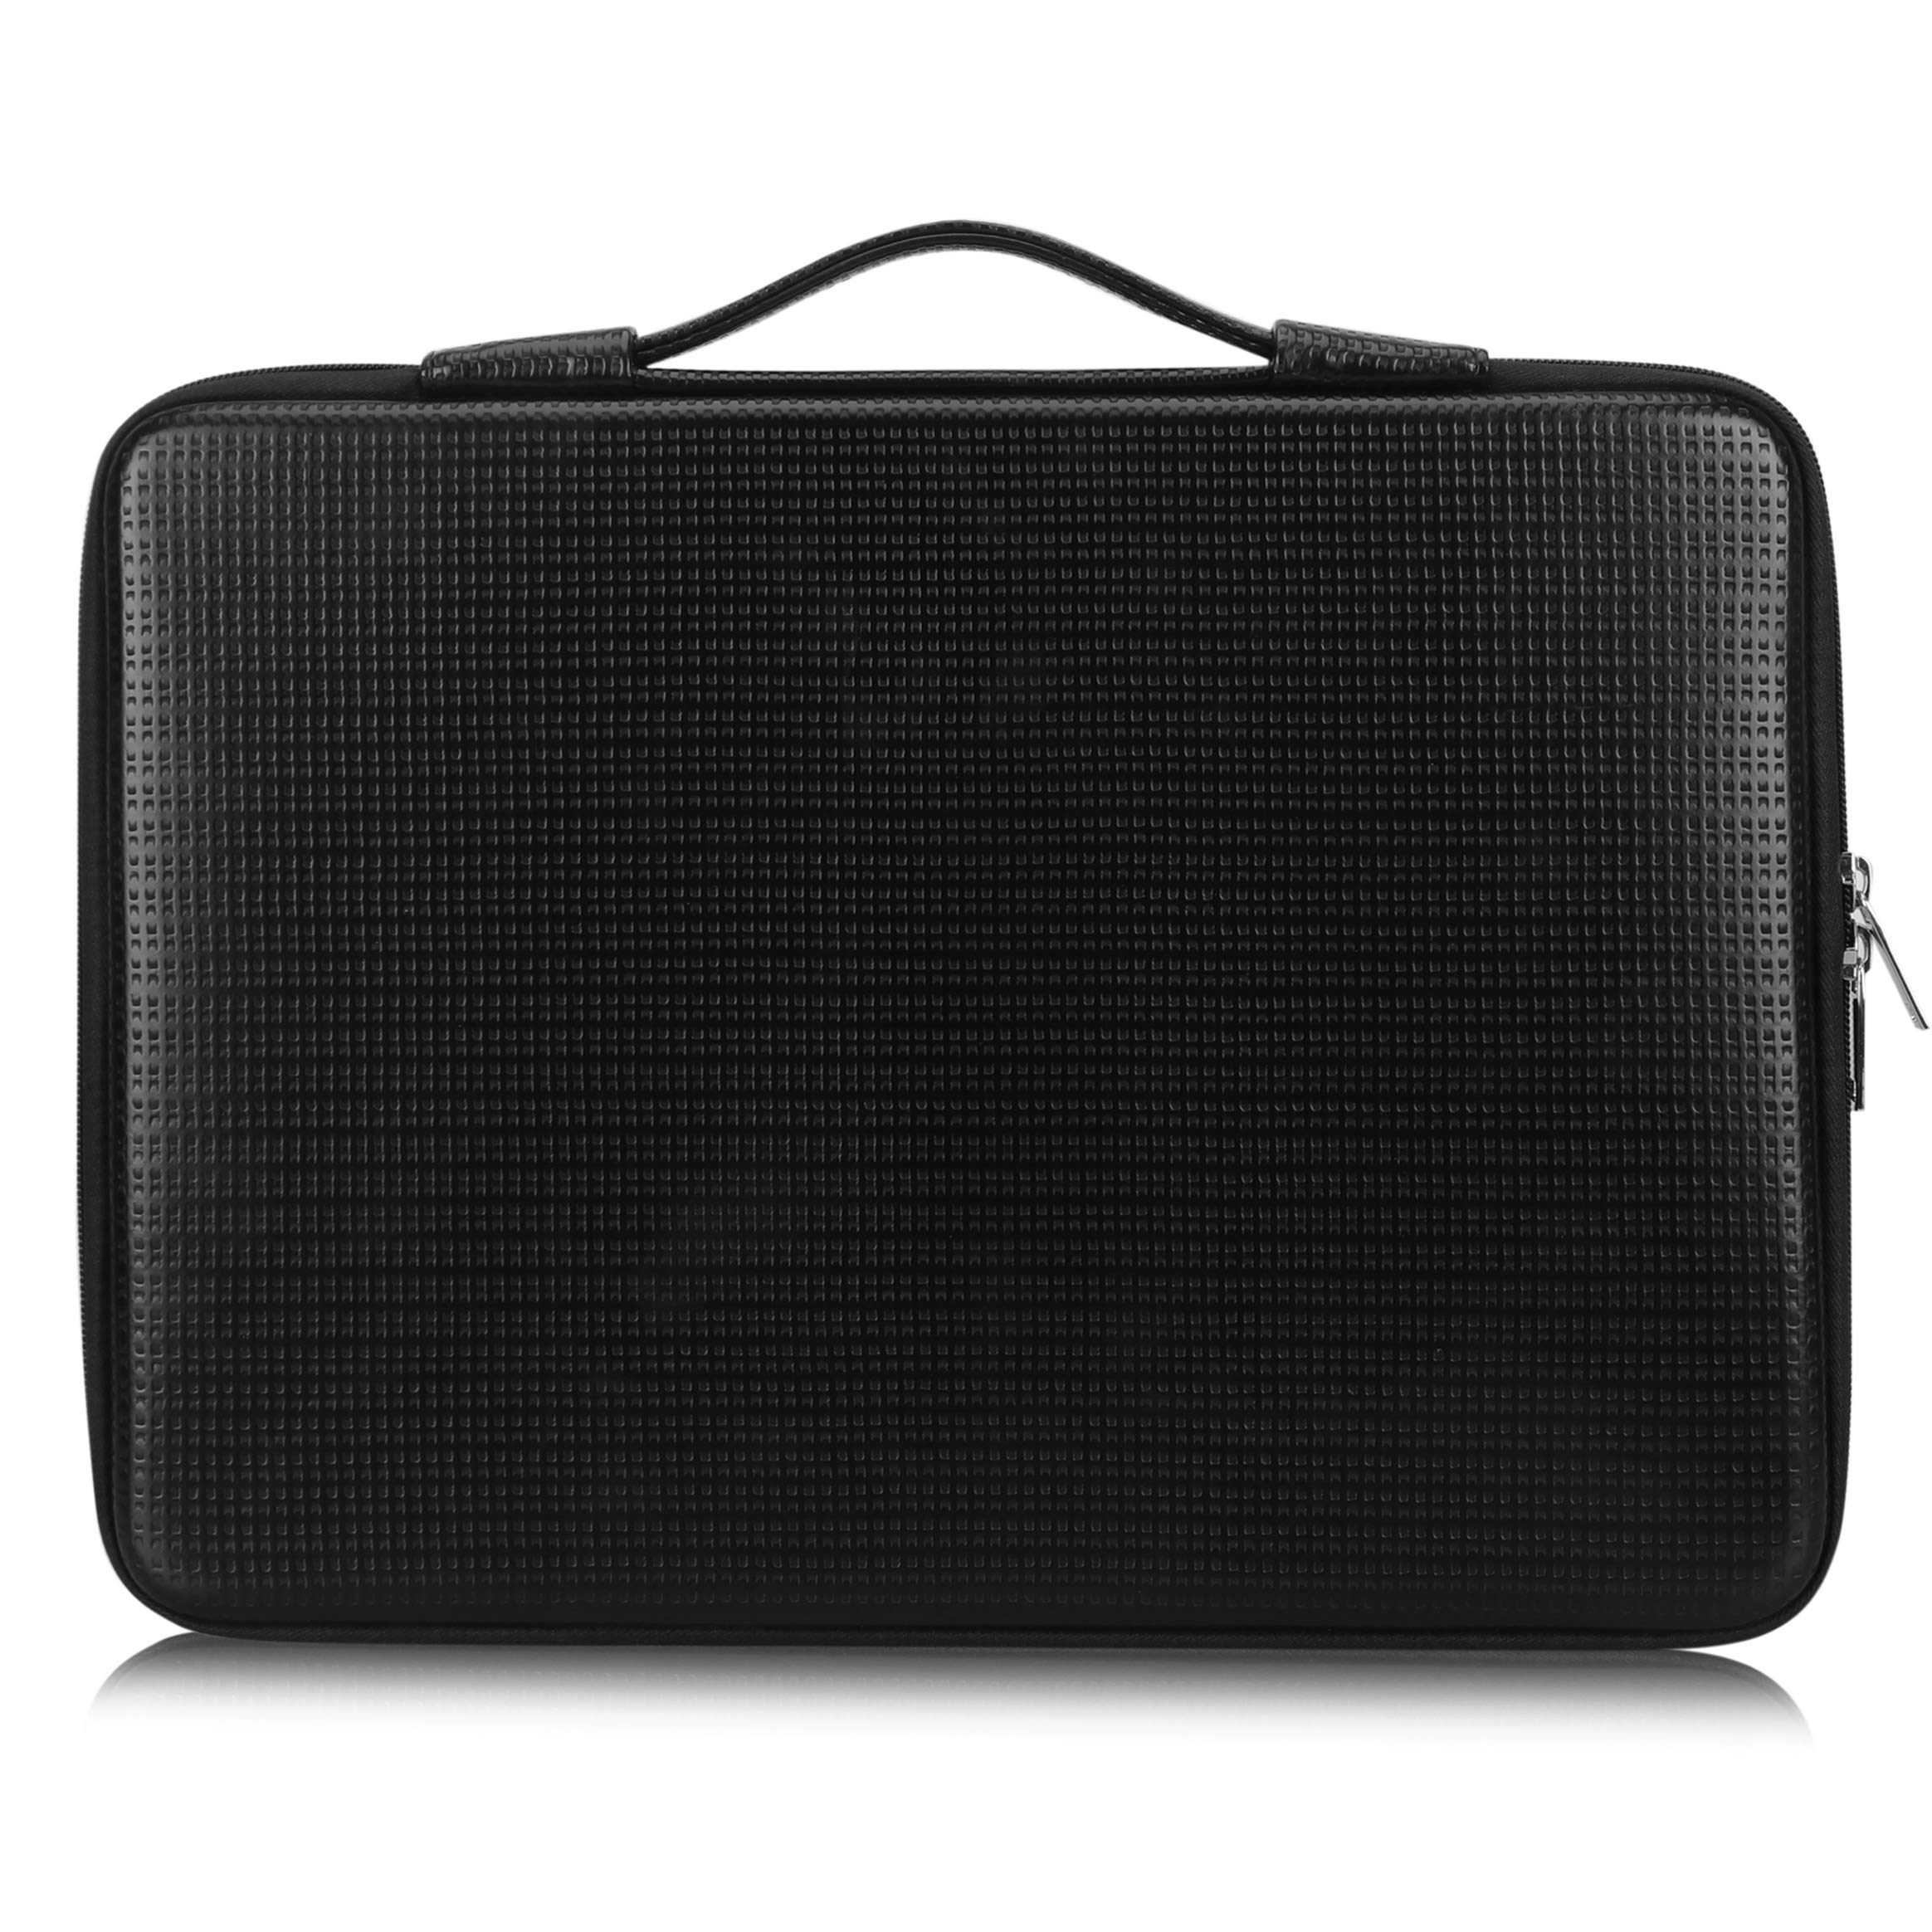 """FYY 12""""-13.3"""" [Waterproof Leather] [Solid Hard Shape] Laptop Sleeve Bag Case with Inner Tuck Net Fits All 12-13.3 Inches Laptops, Notebook, MacBook Air/Pro, Tablet, iPad Black"""